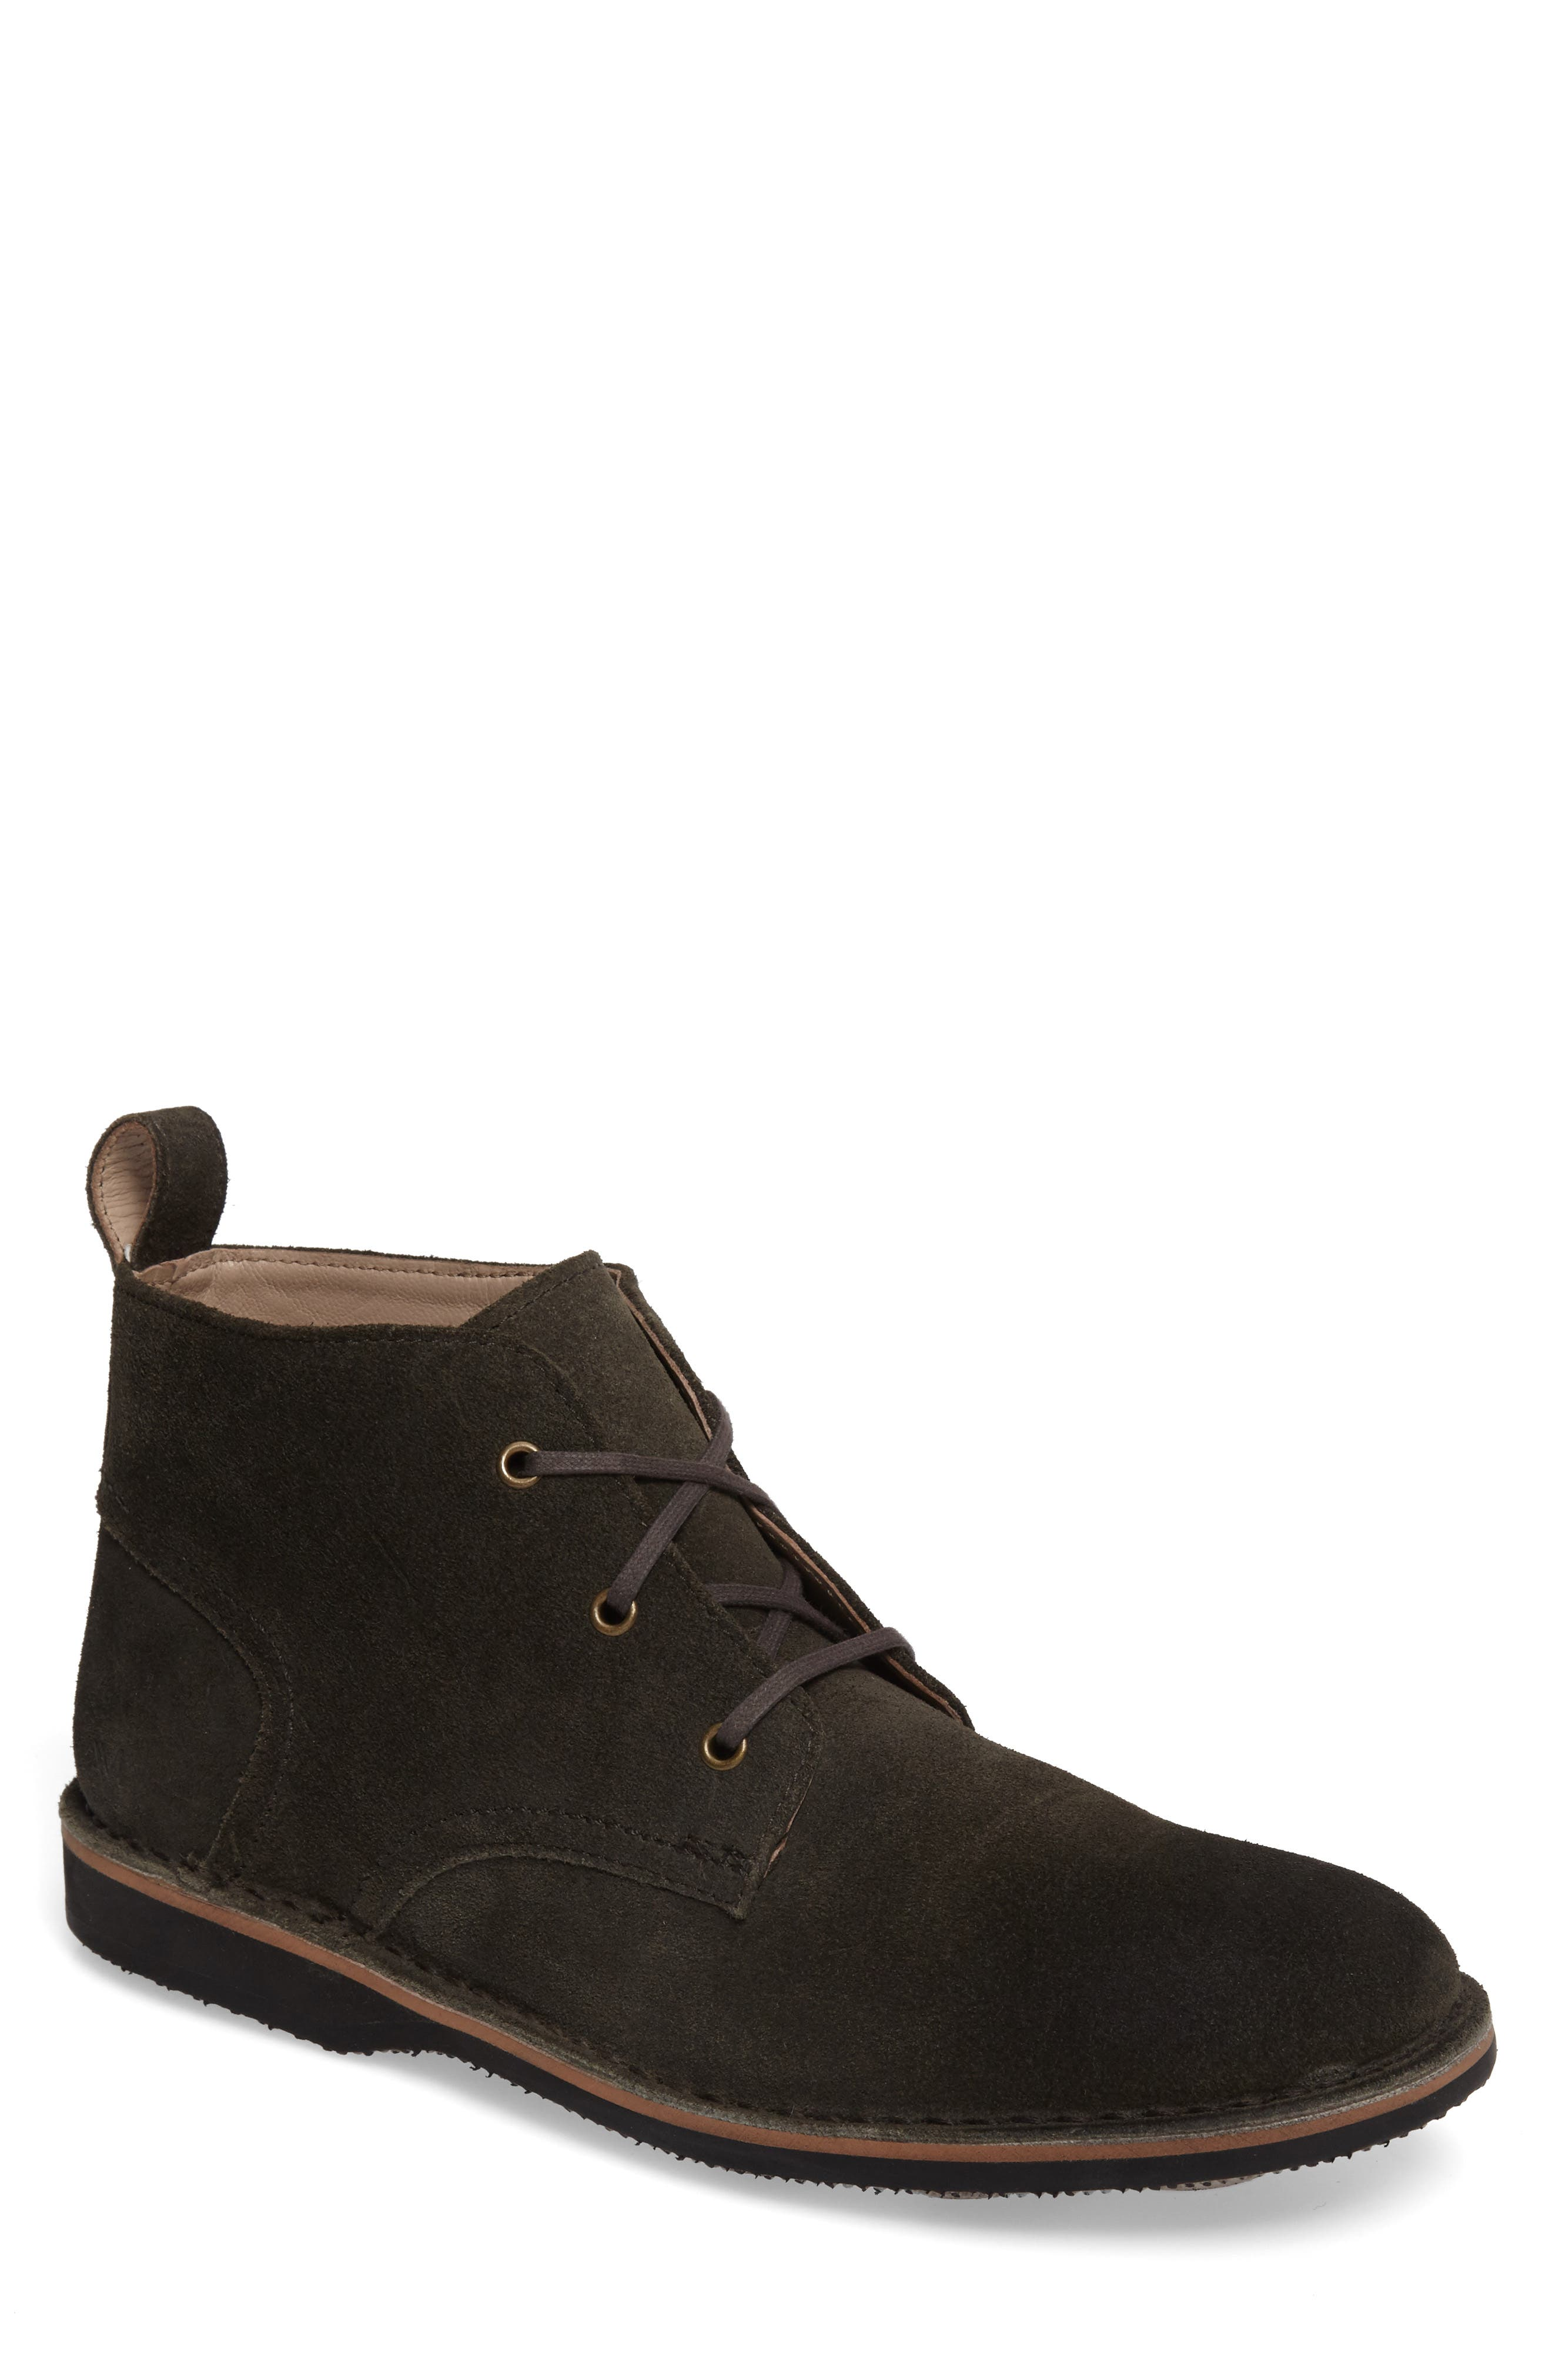 Andrew Marc Dorchester Chukka Boot (Men)